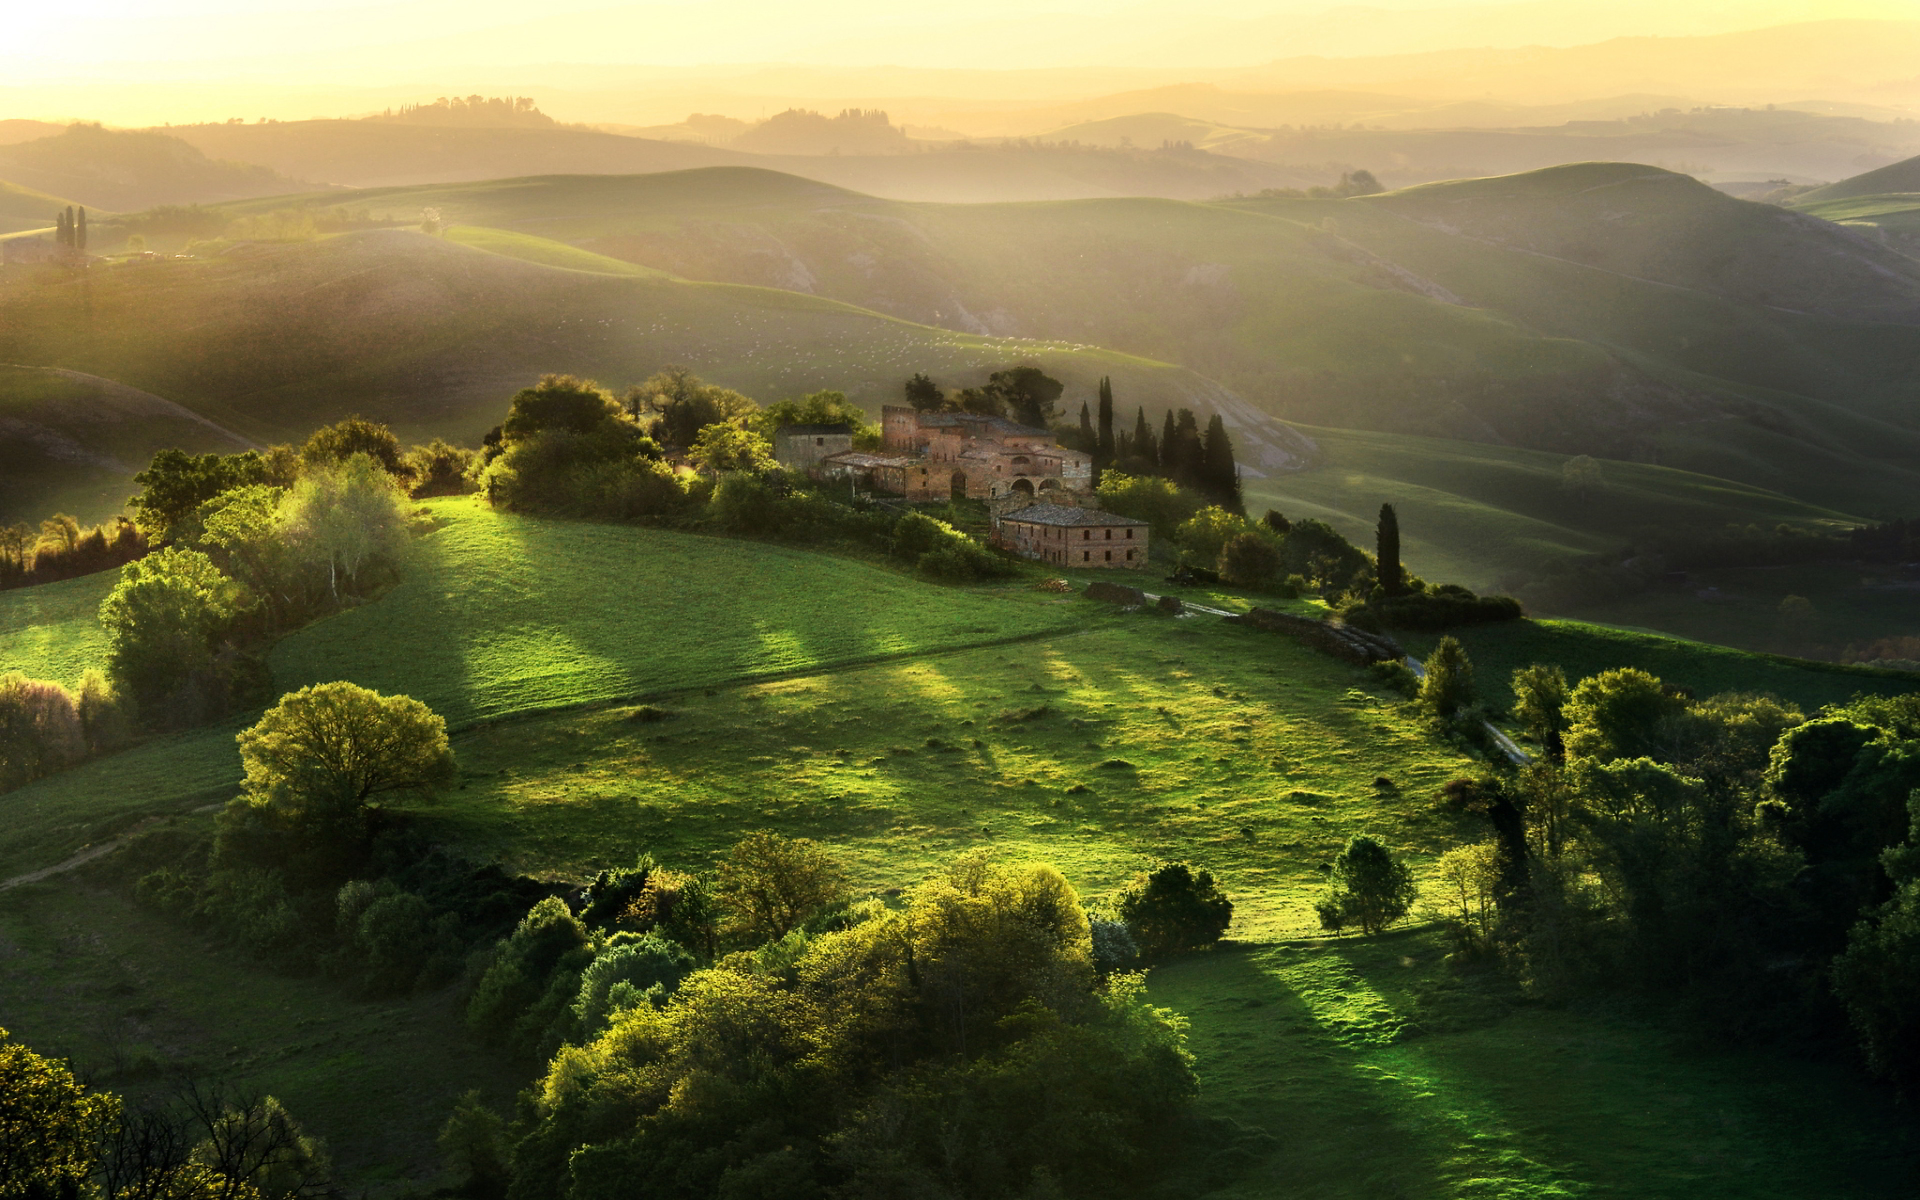 sunrise pictures tuscany